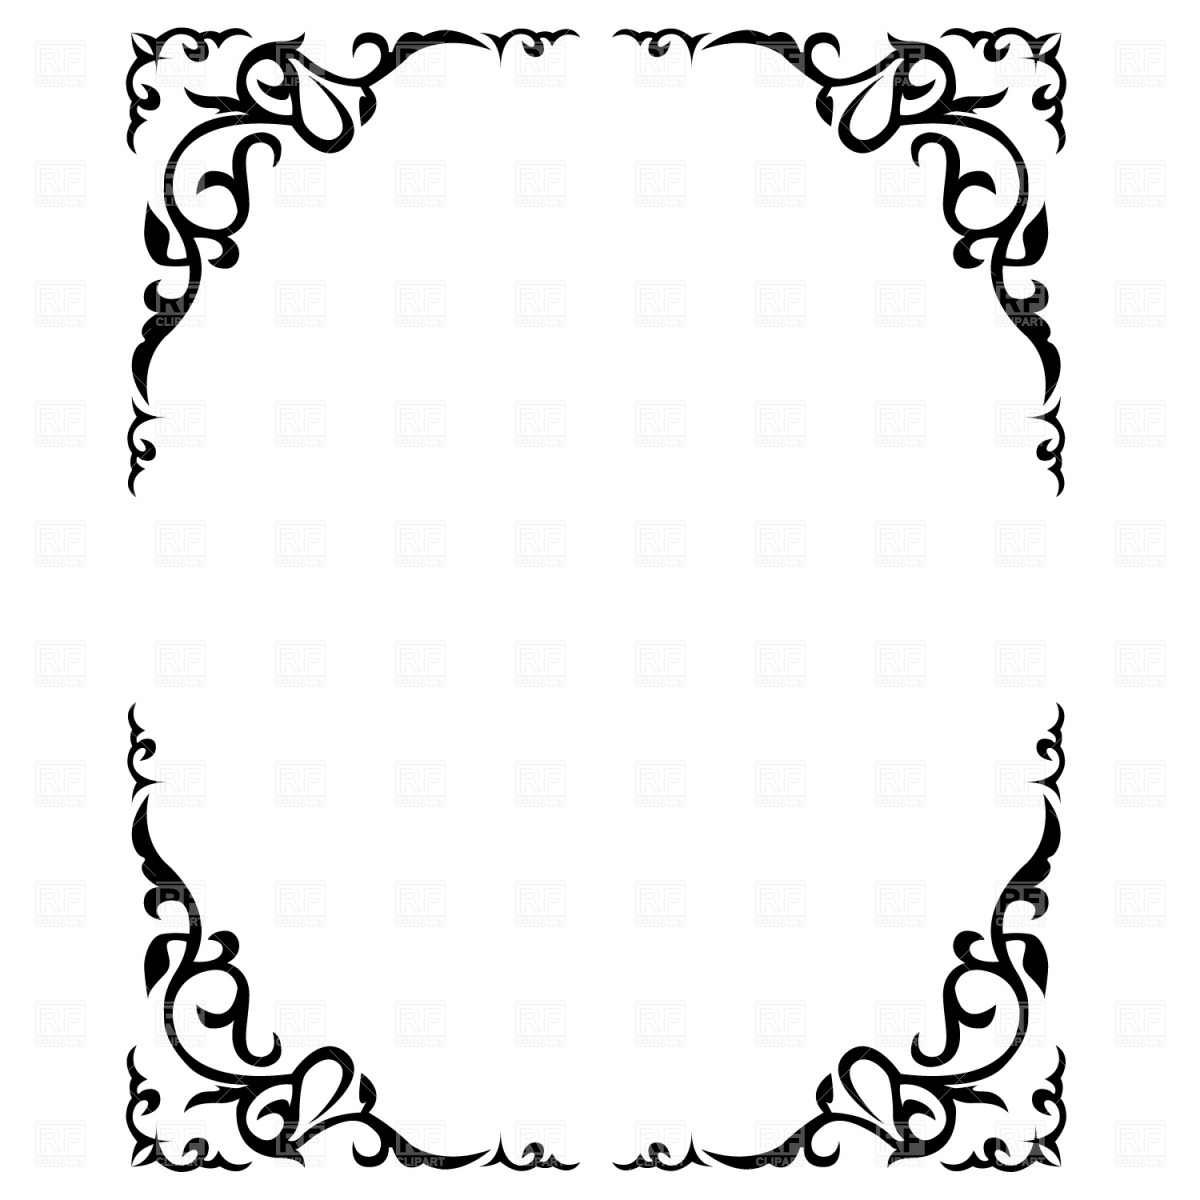 Free Wedding Clip Free Printable Clip Art Borders And Frames Free - Free Printable Clip Art Borders